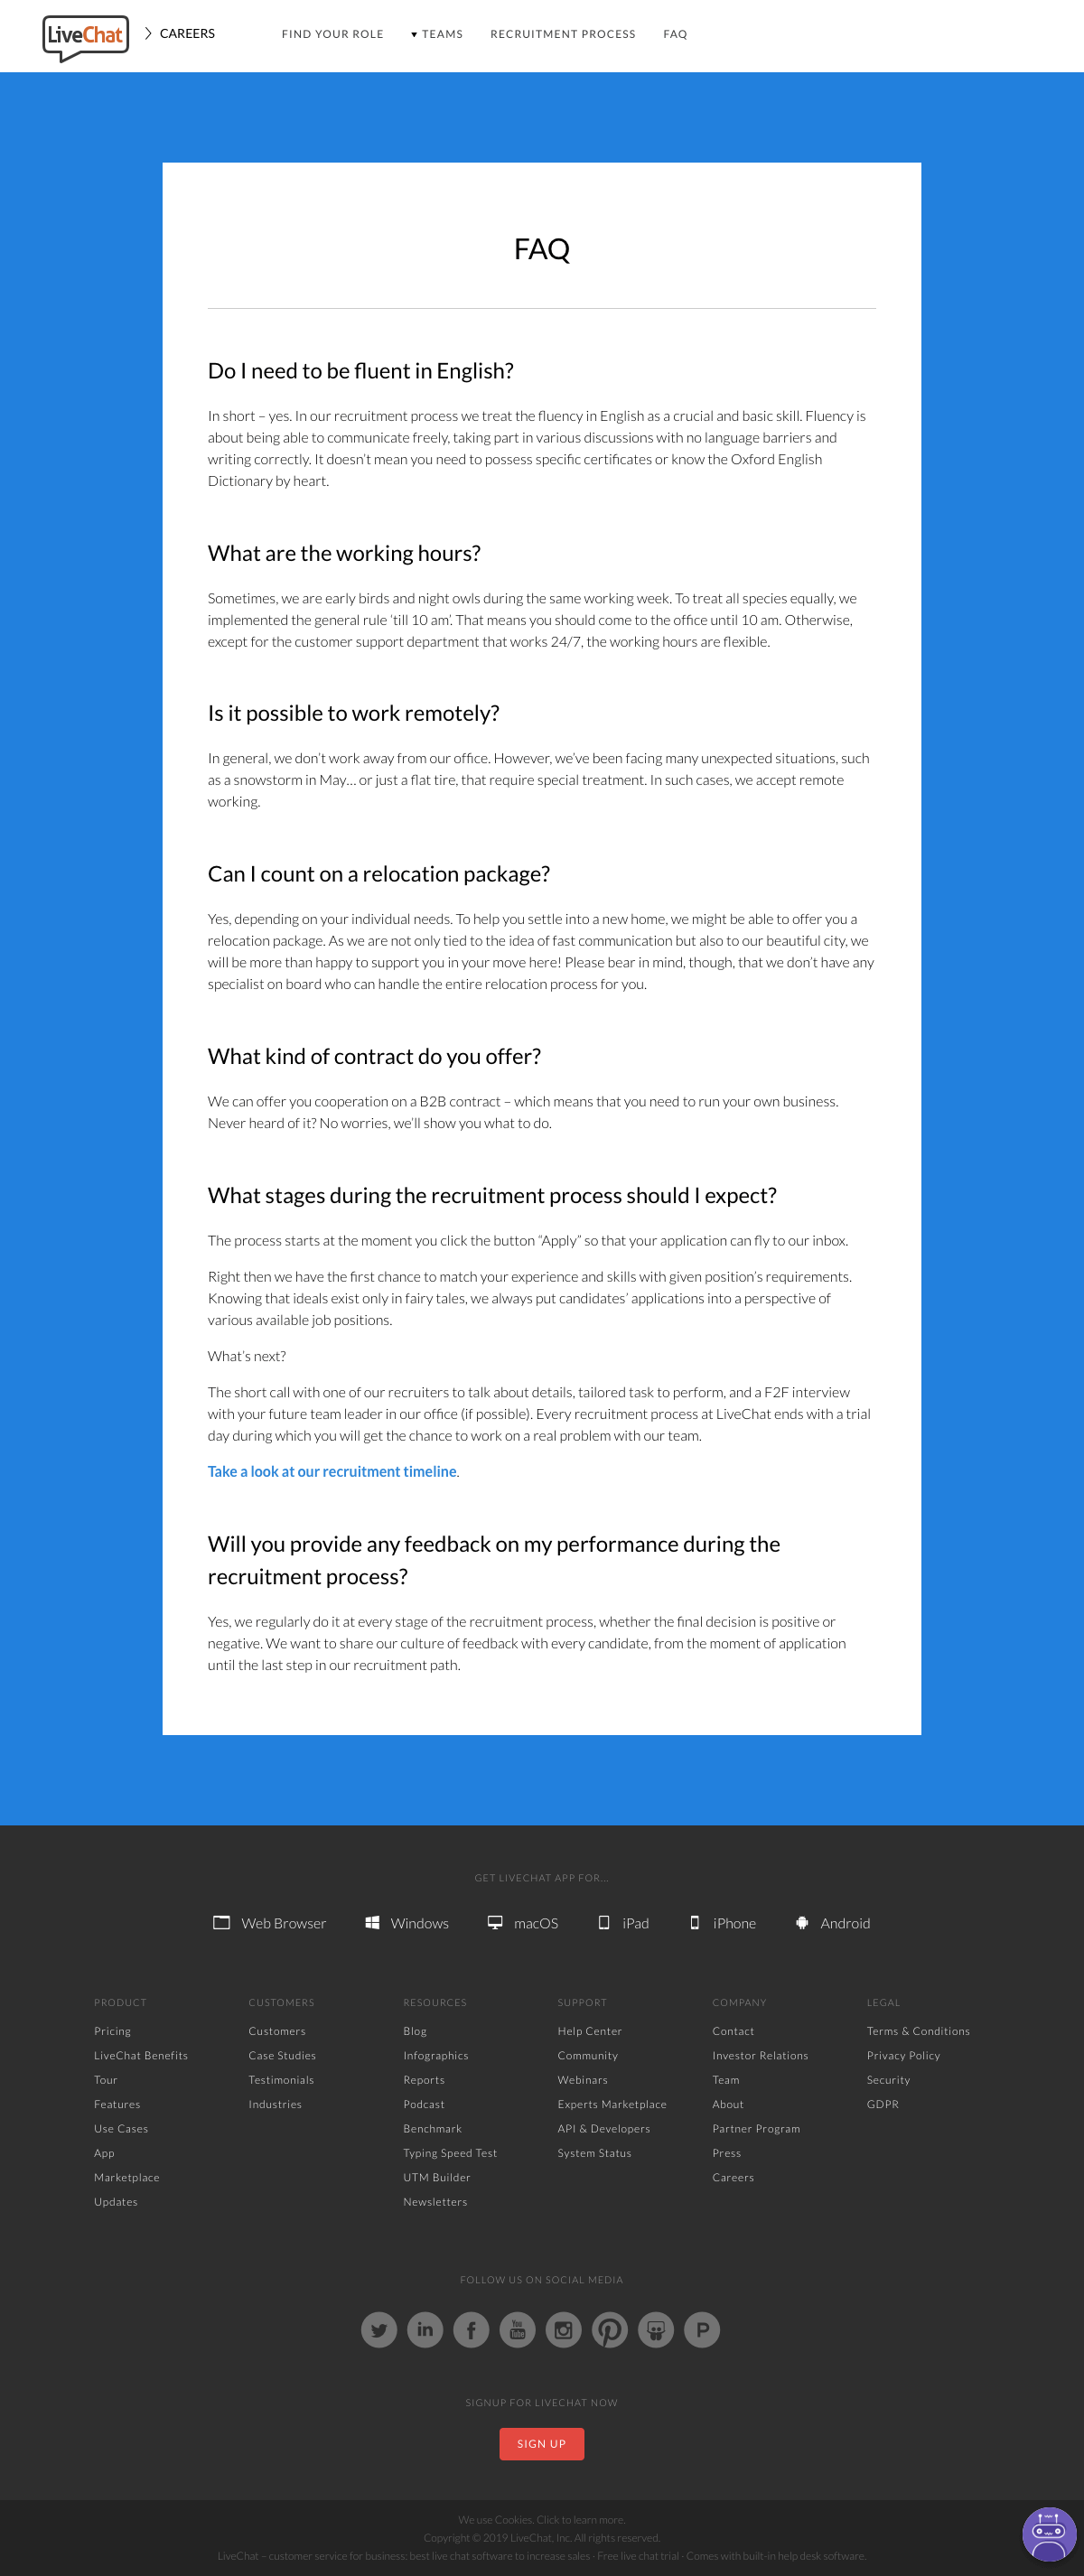 LiveChat - FAQ page